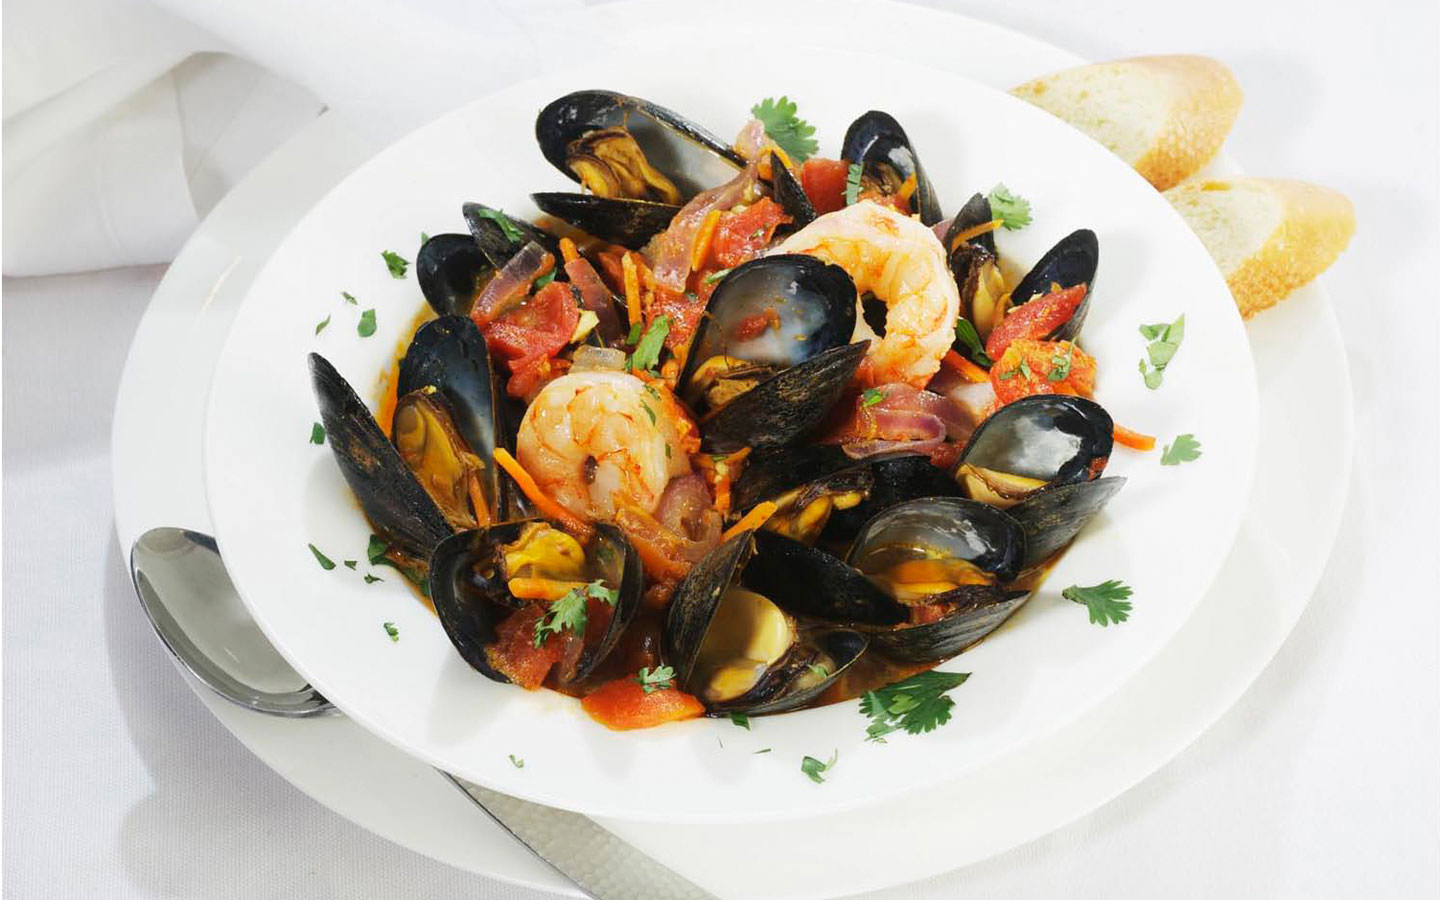 Mussels and shrimp in light curry